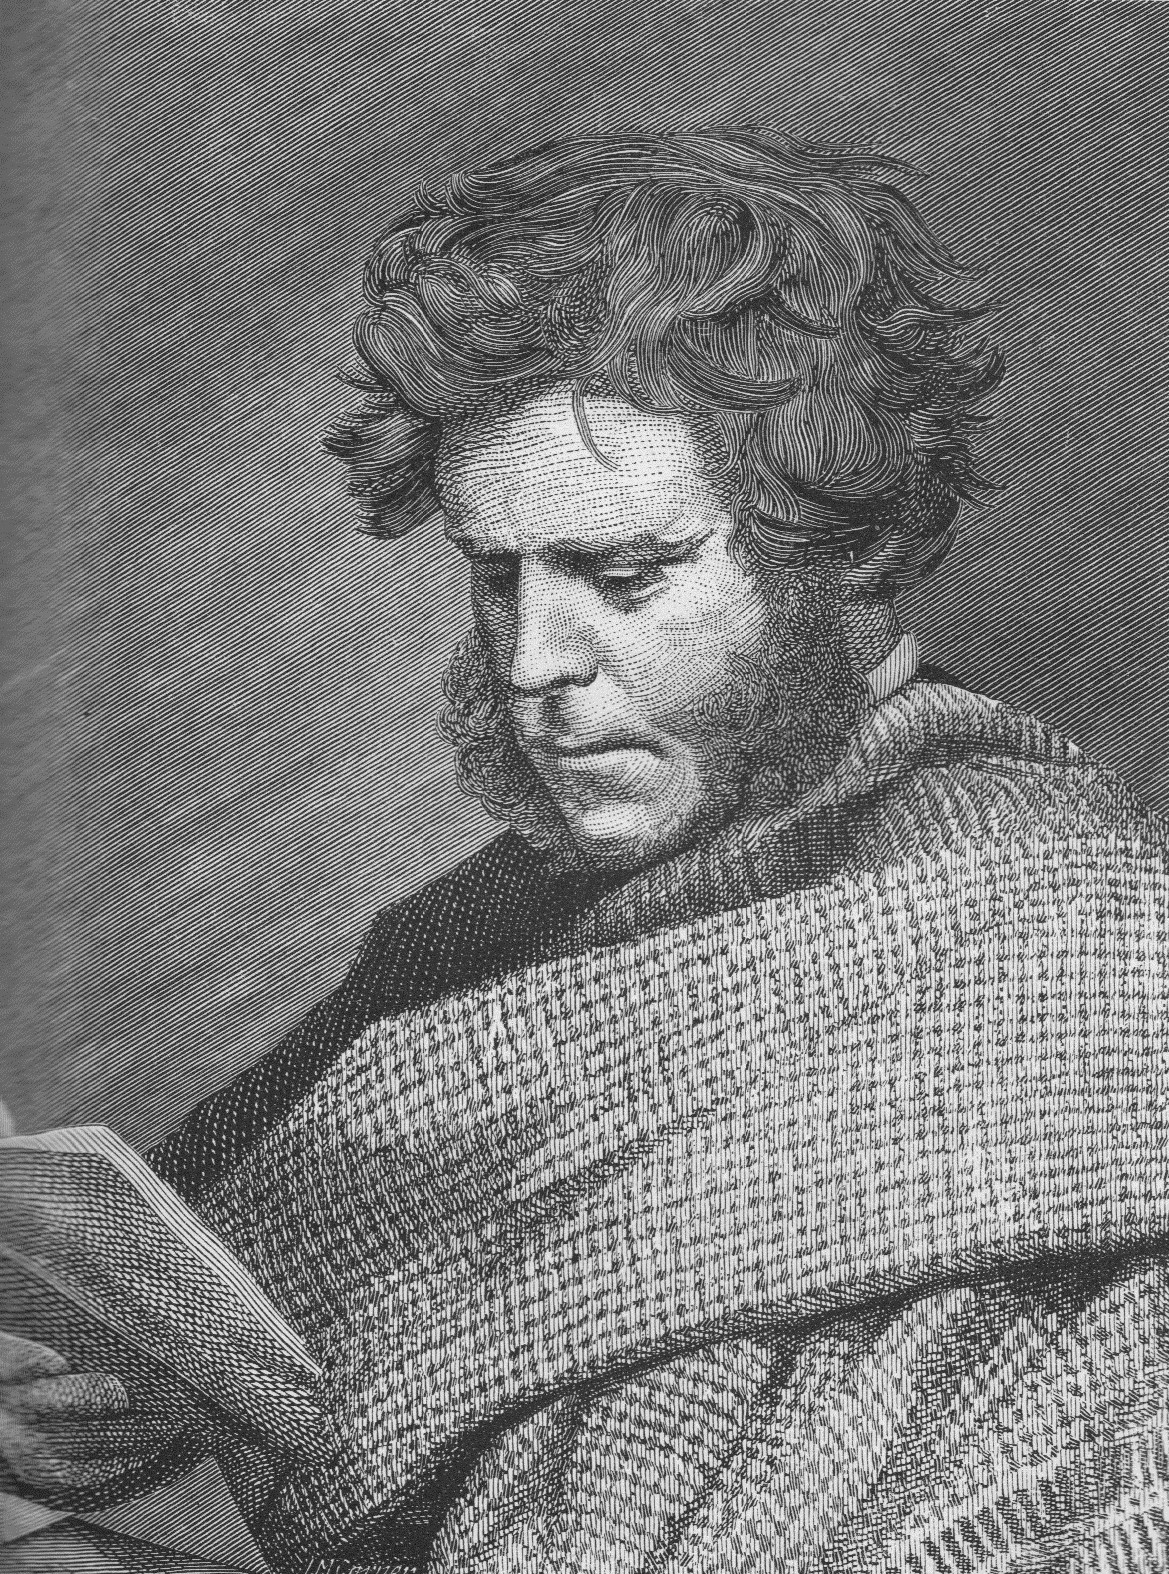 The tragic Hugh Miller https://commons.wikimedia.org/wiki/File:Sketch_of_Hugh_Miller.jpg